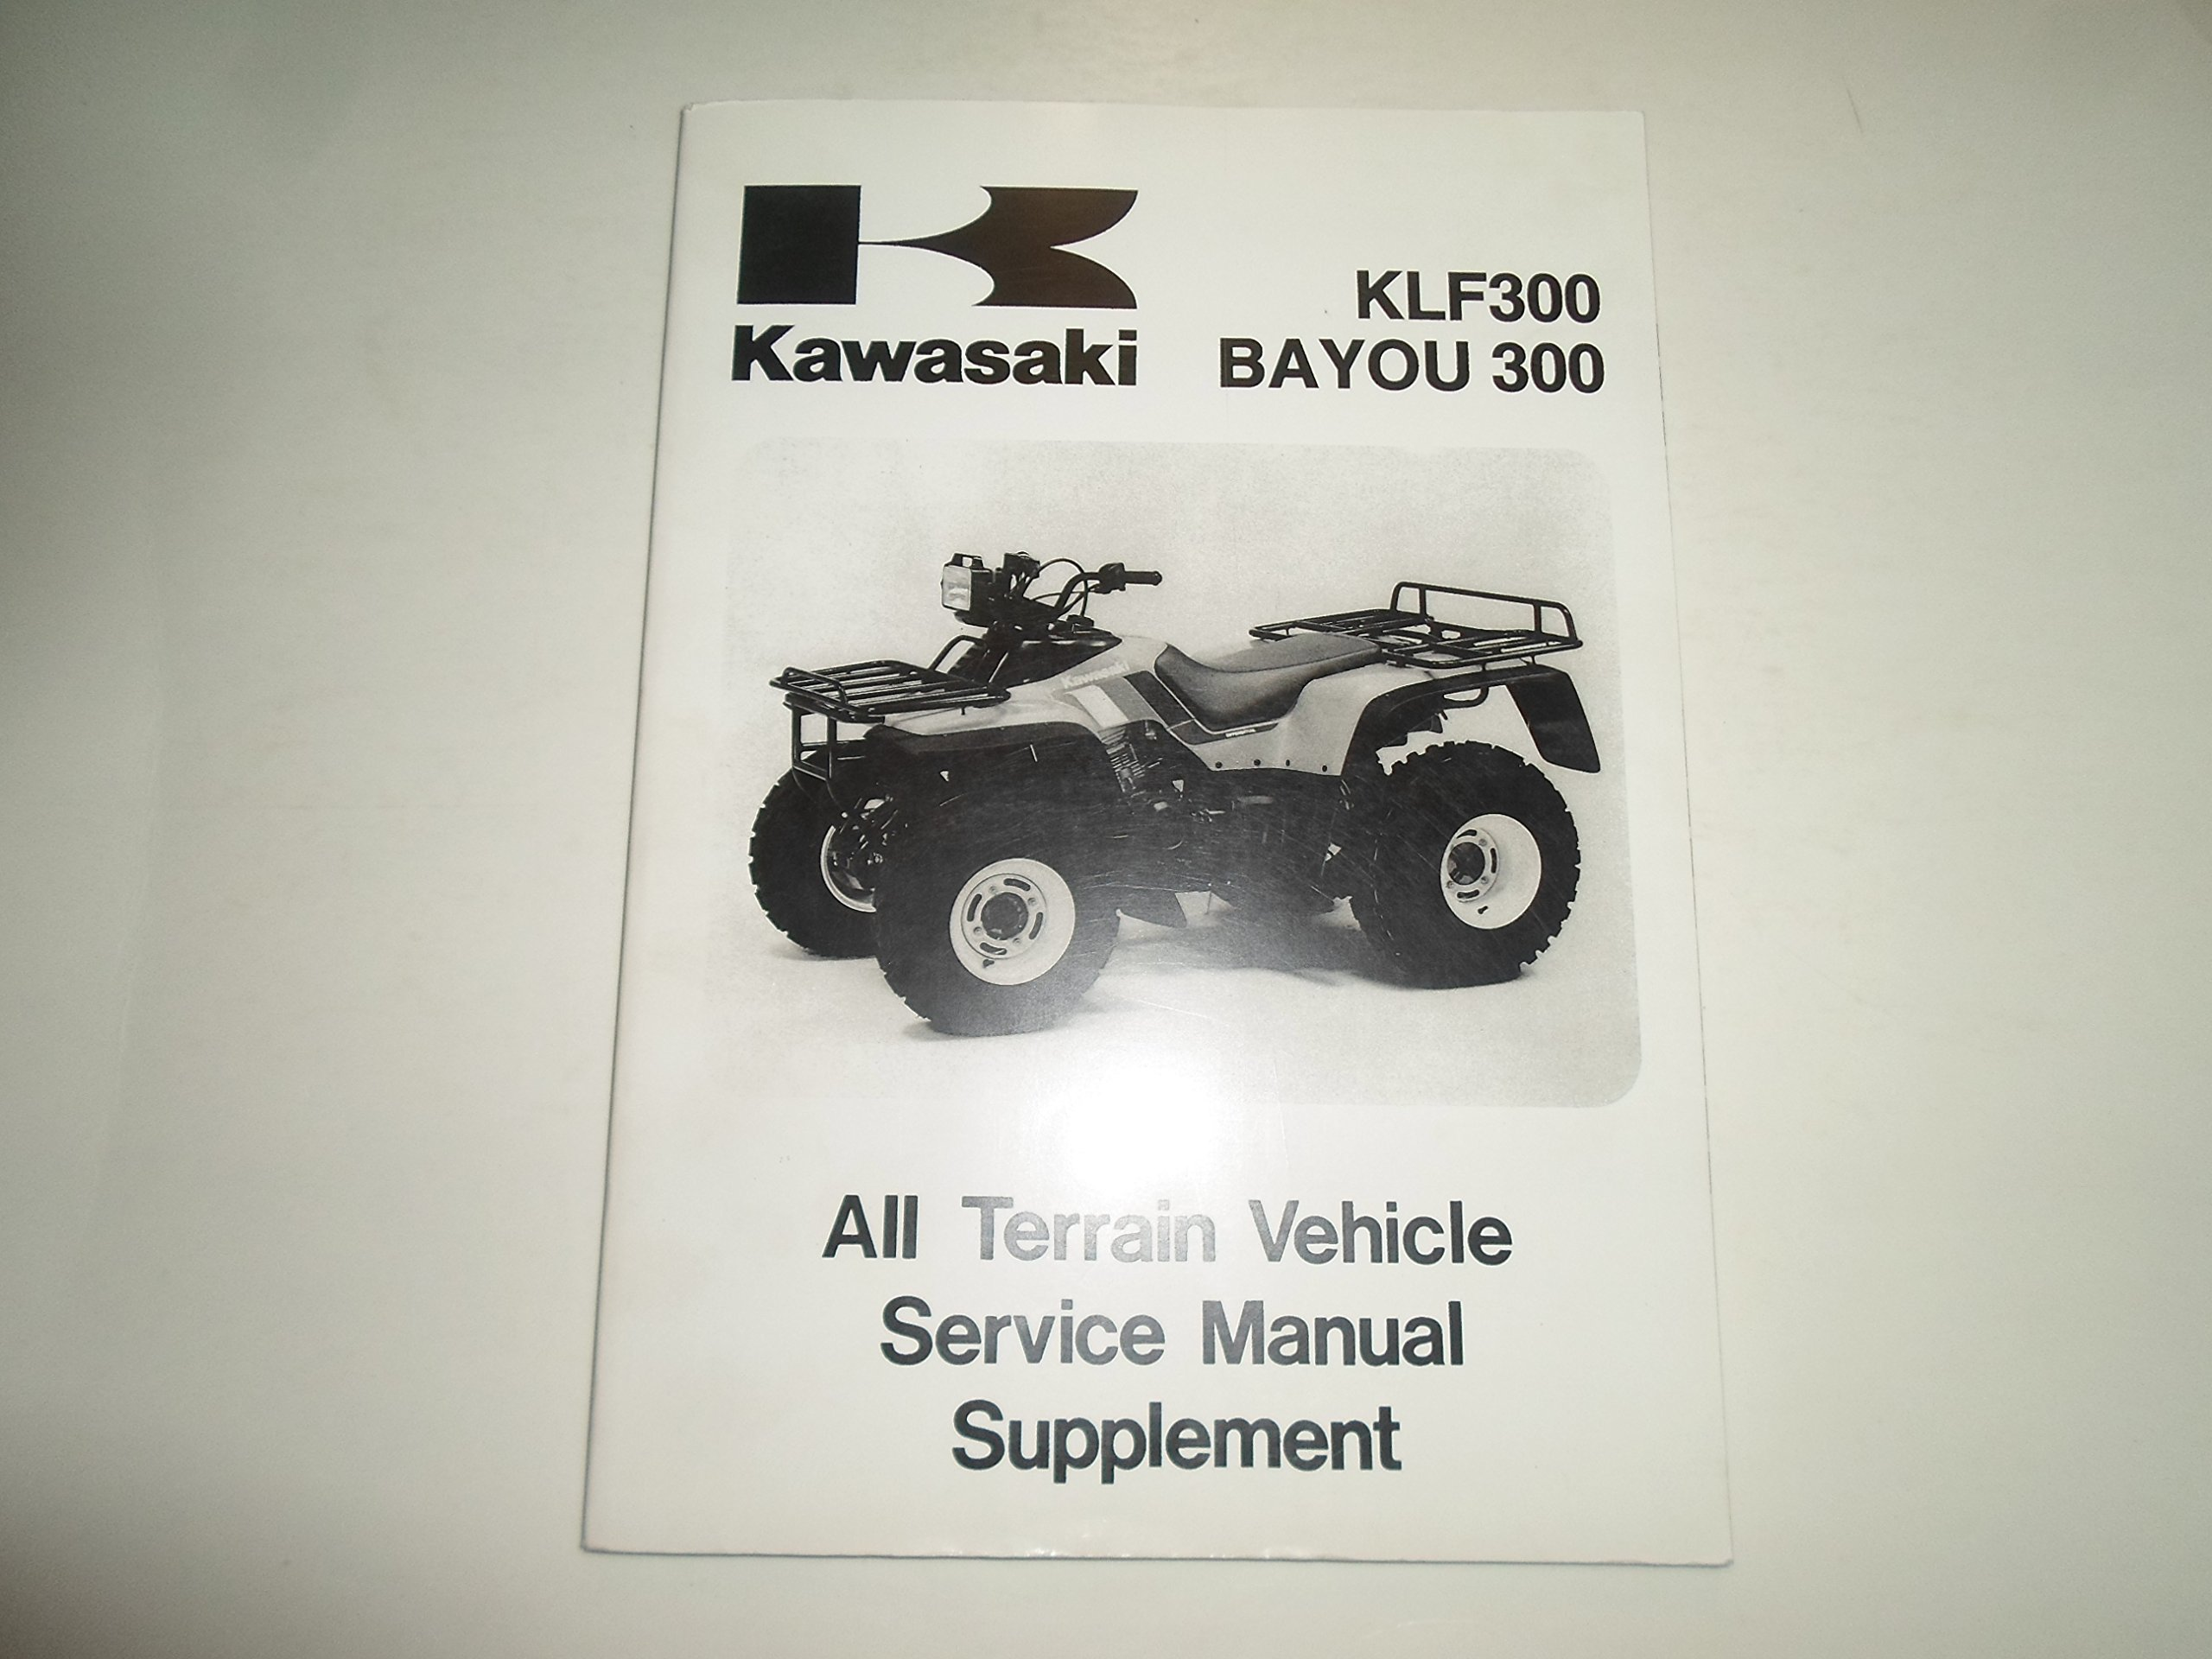 1988 2006 Kawasaki KLF300 BAYOU 300 ATV Service Manual Supplement: KAWASAKI:  Amazon.com: Books